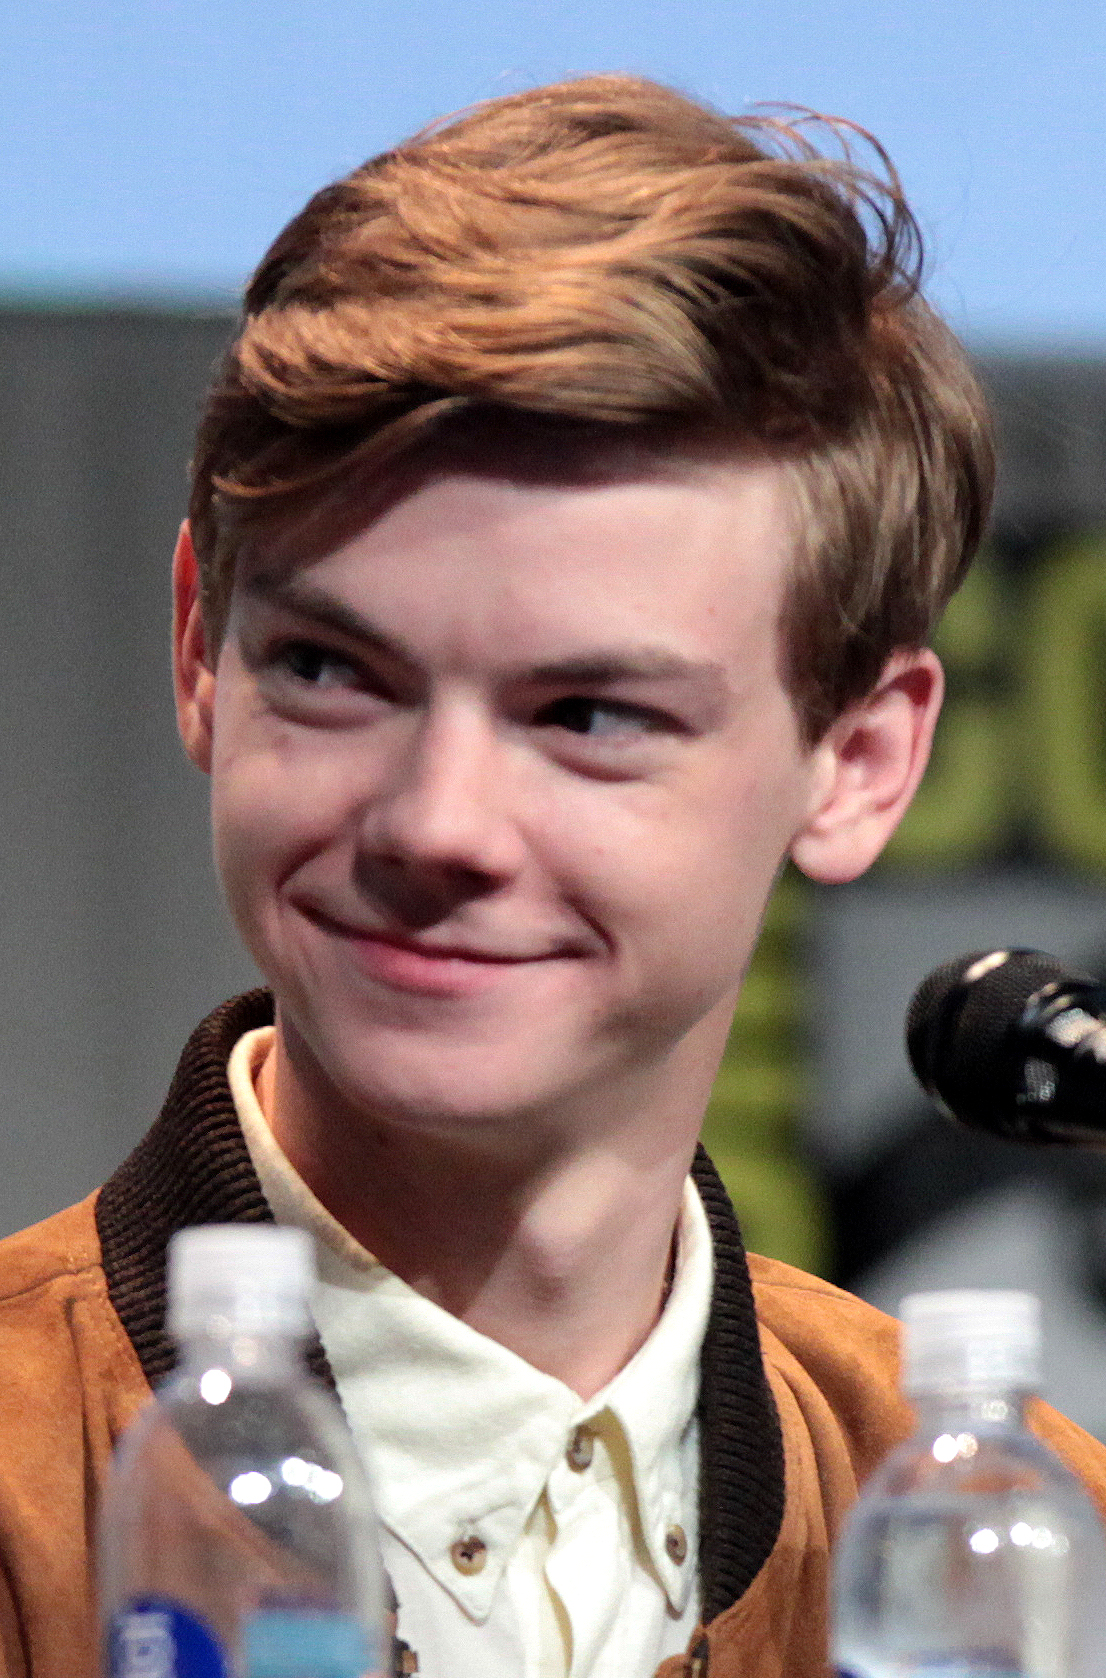 Brodie-Sangster at the 2015 [[San Diego Comic-Con]]